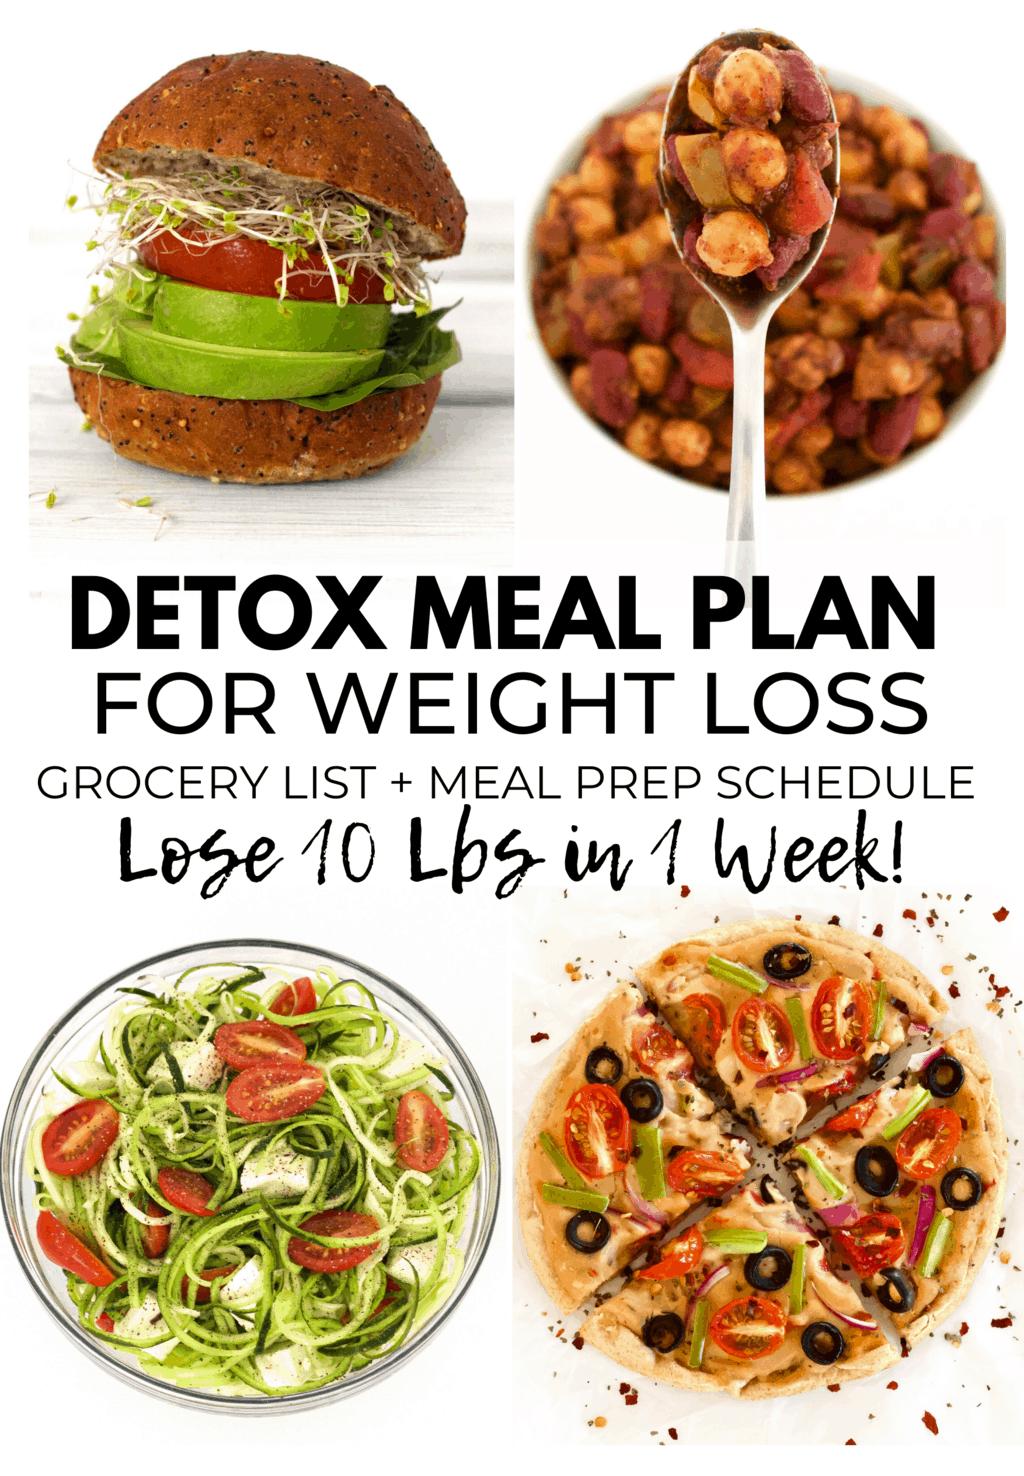 A 7-Day Vegan Detox Meal Plan that will help you lose weight, reset, and get you back on track! Complete with 21 simple & delicious recipes, grocery list, and meal prep schedule. All recipes are gluten-free and contain no added sugar!